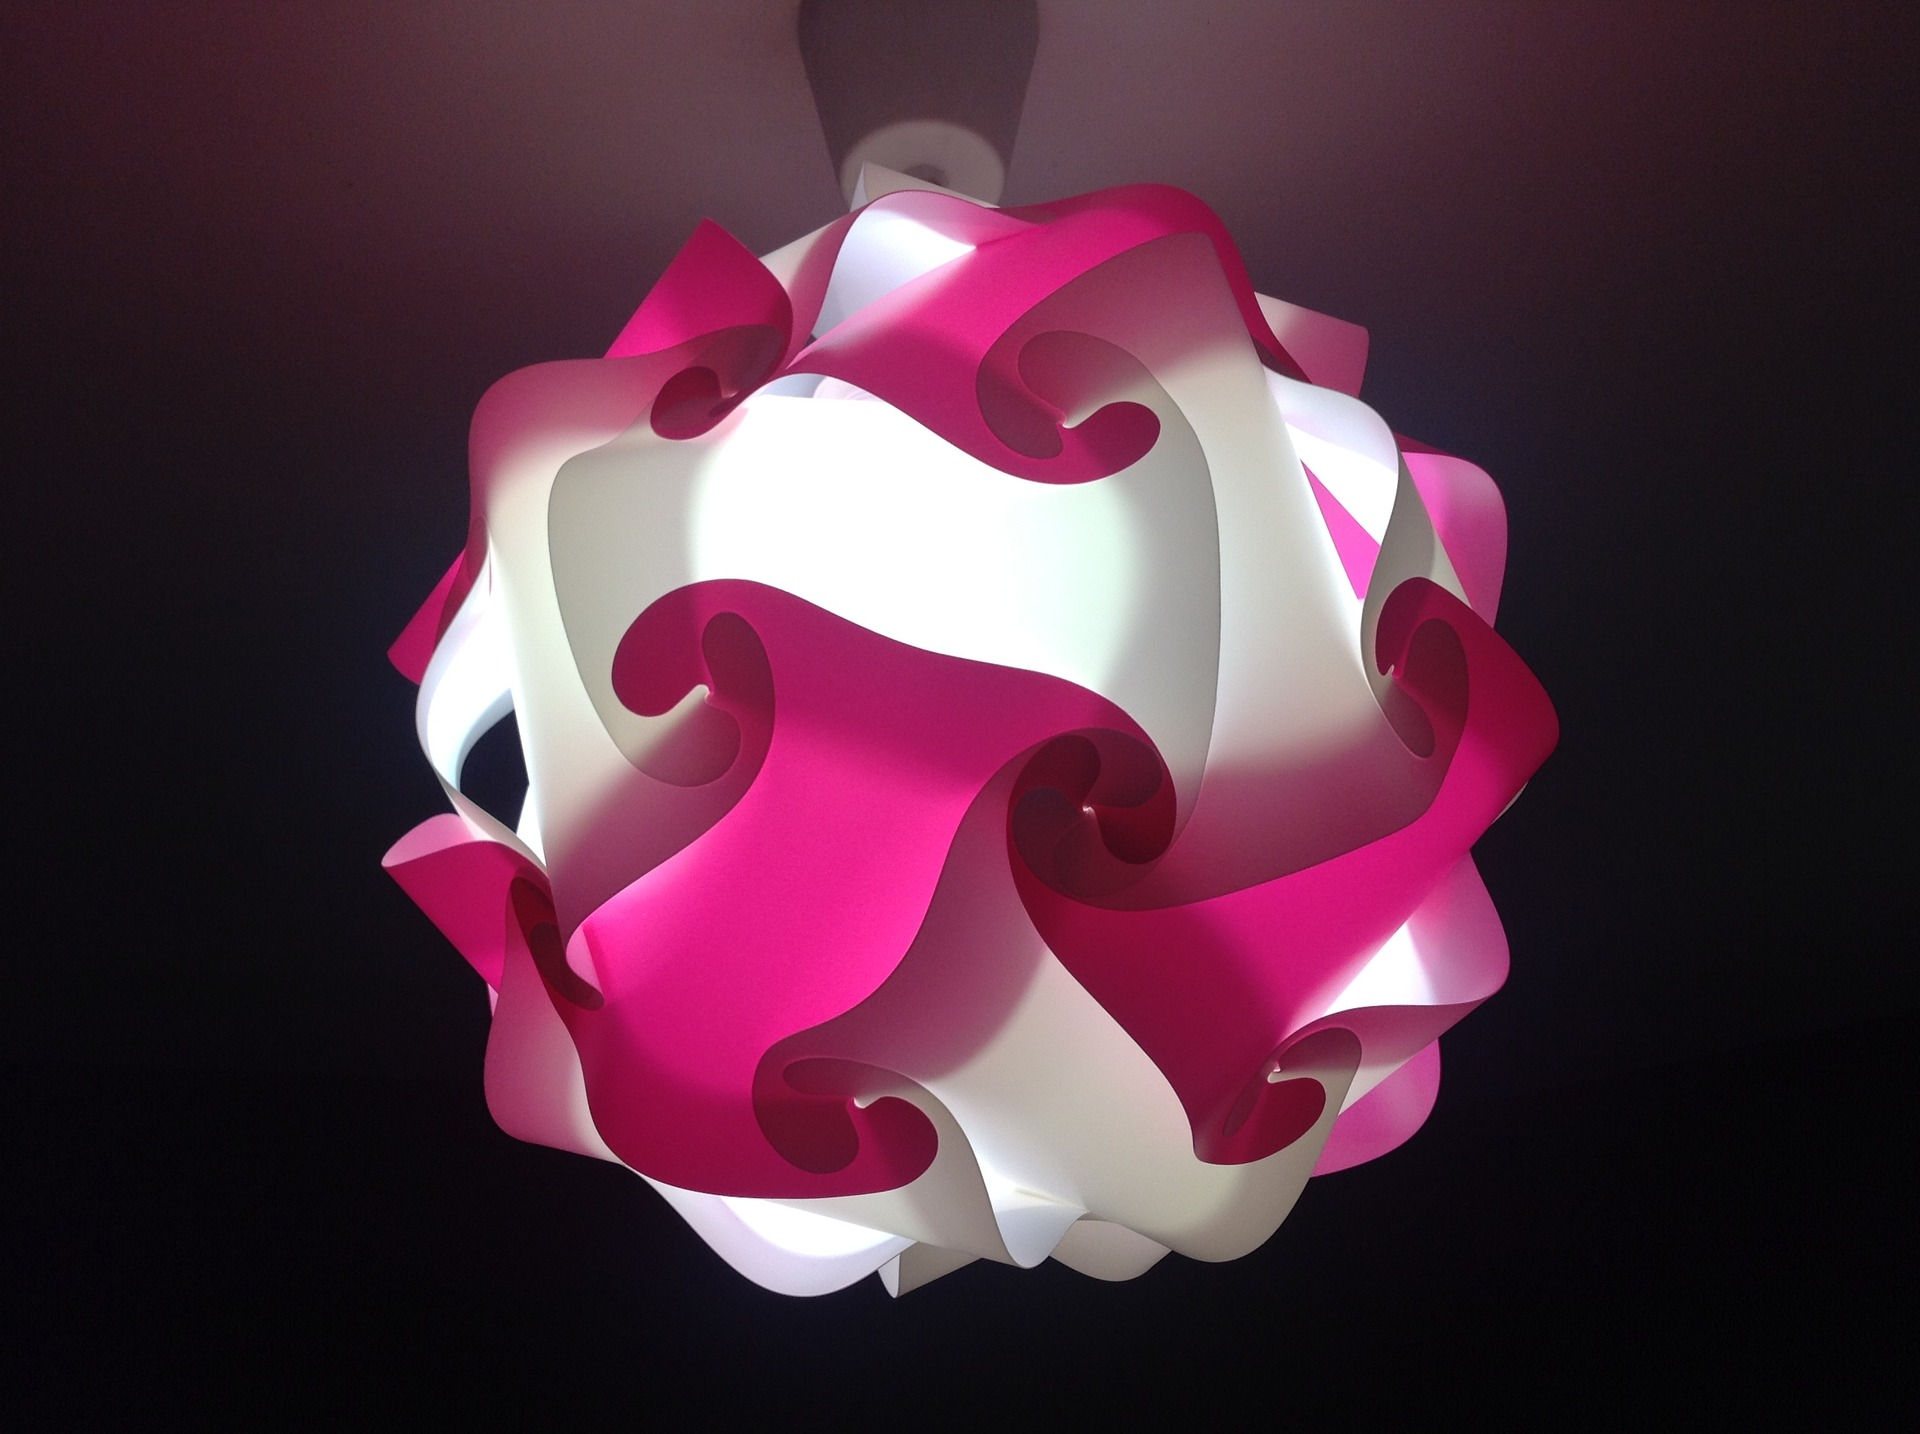 Agreable Luminaire Chambre Blanc